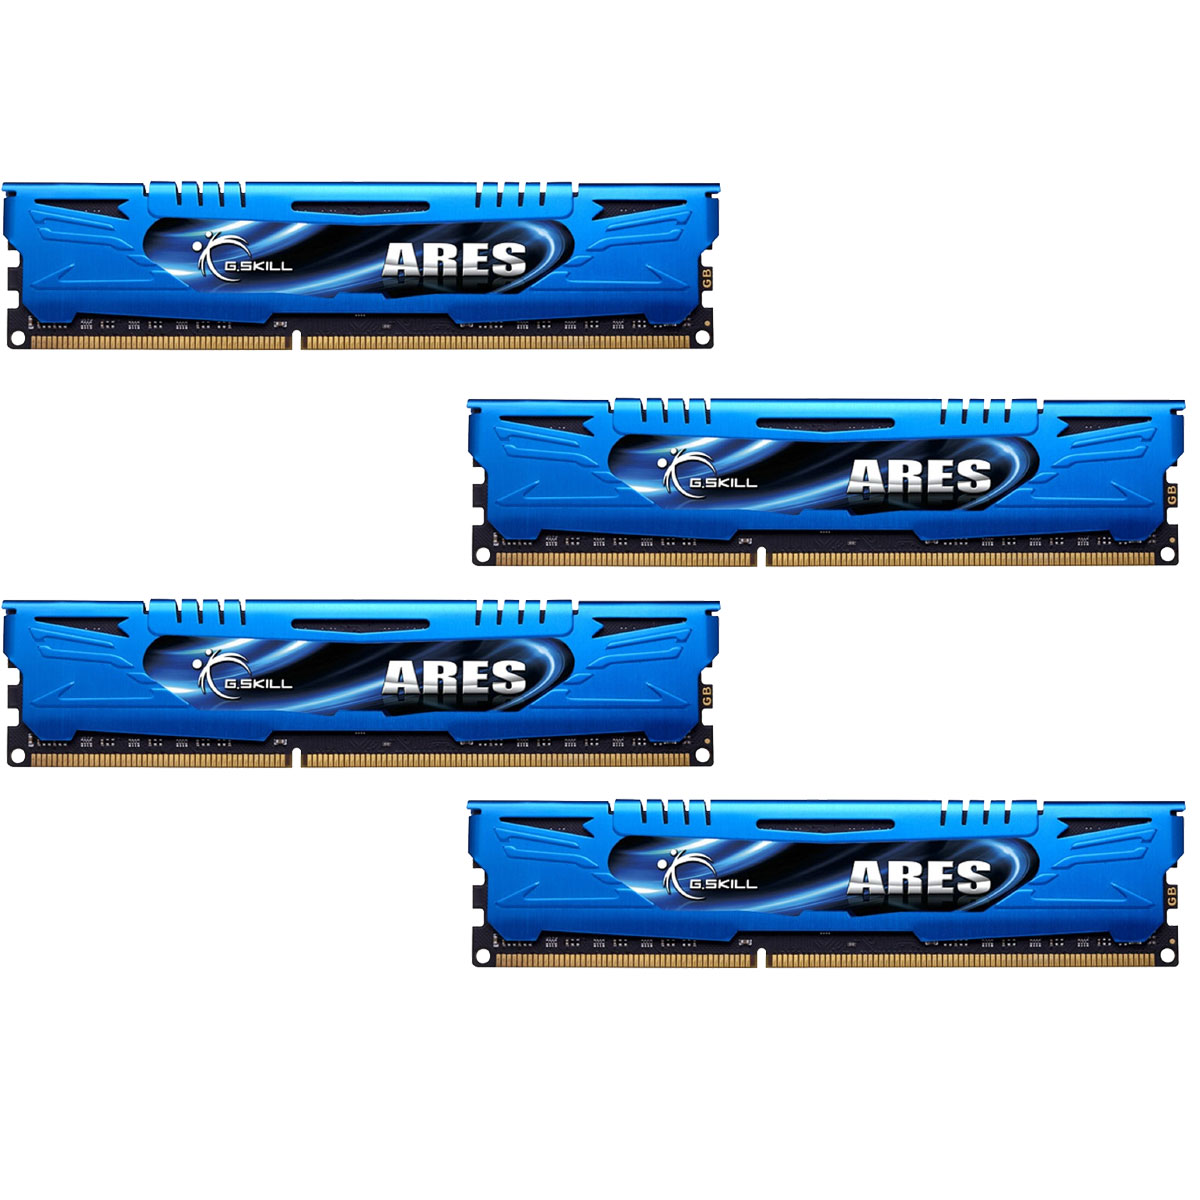 Mémoire PC G.Skill Ares Blue Series 32 Go (4 x 8 Go) DDR3 2133 MHz CL10 Kit Quad Channel DDR3 PC3-17000 - F3-2133C10Q-32GAB (garantie à vie par G.Skill)